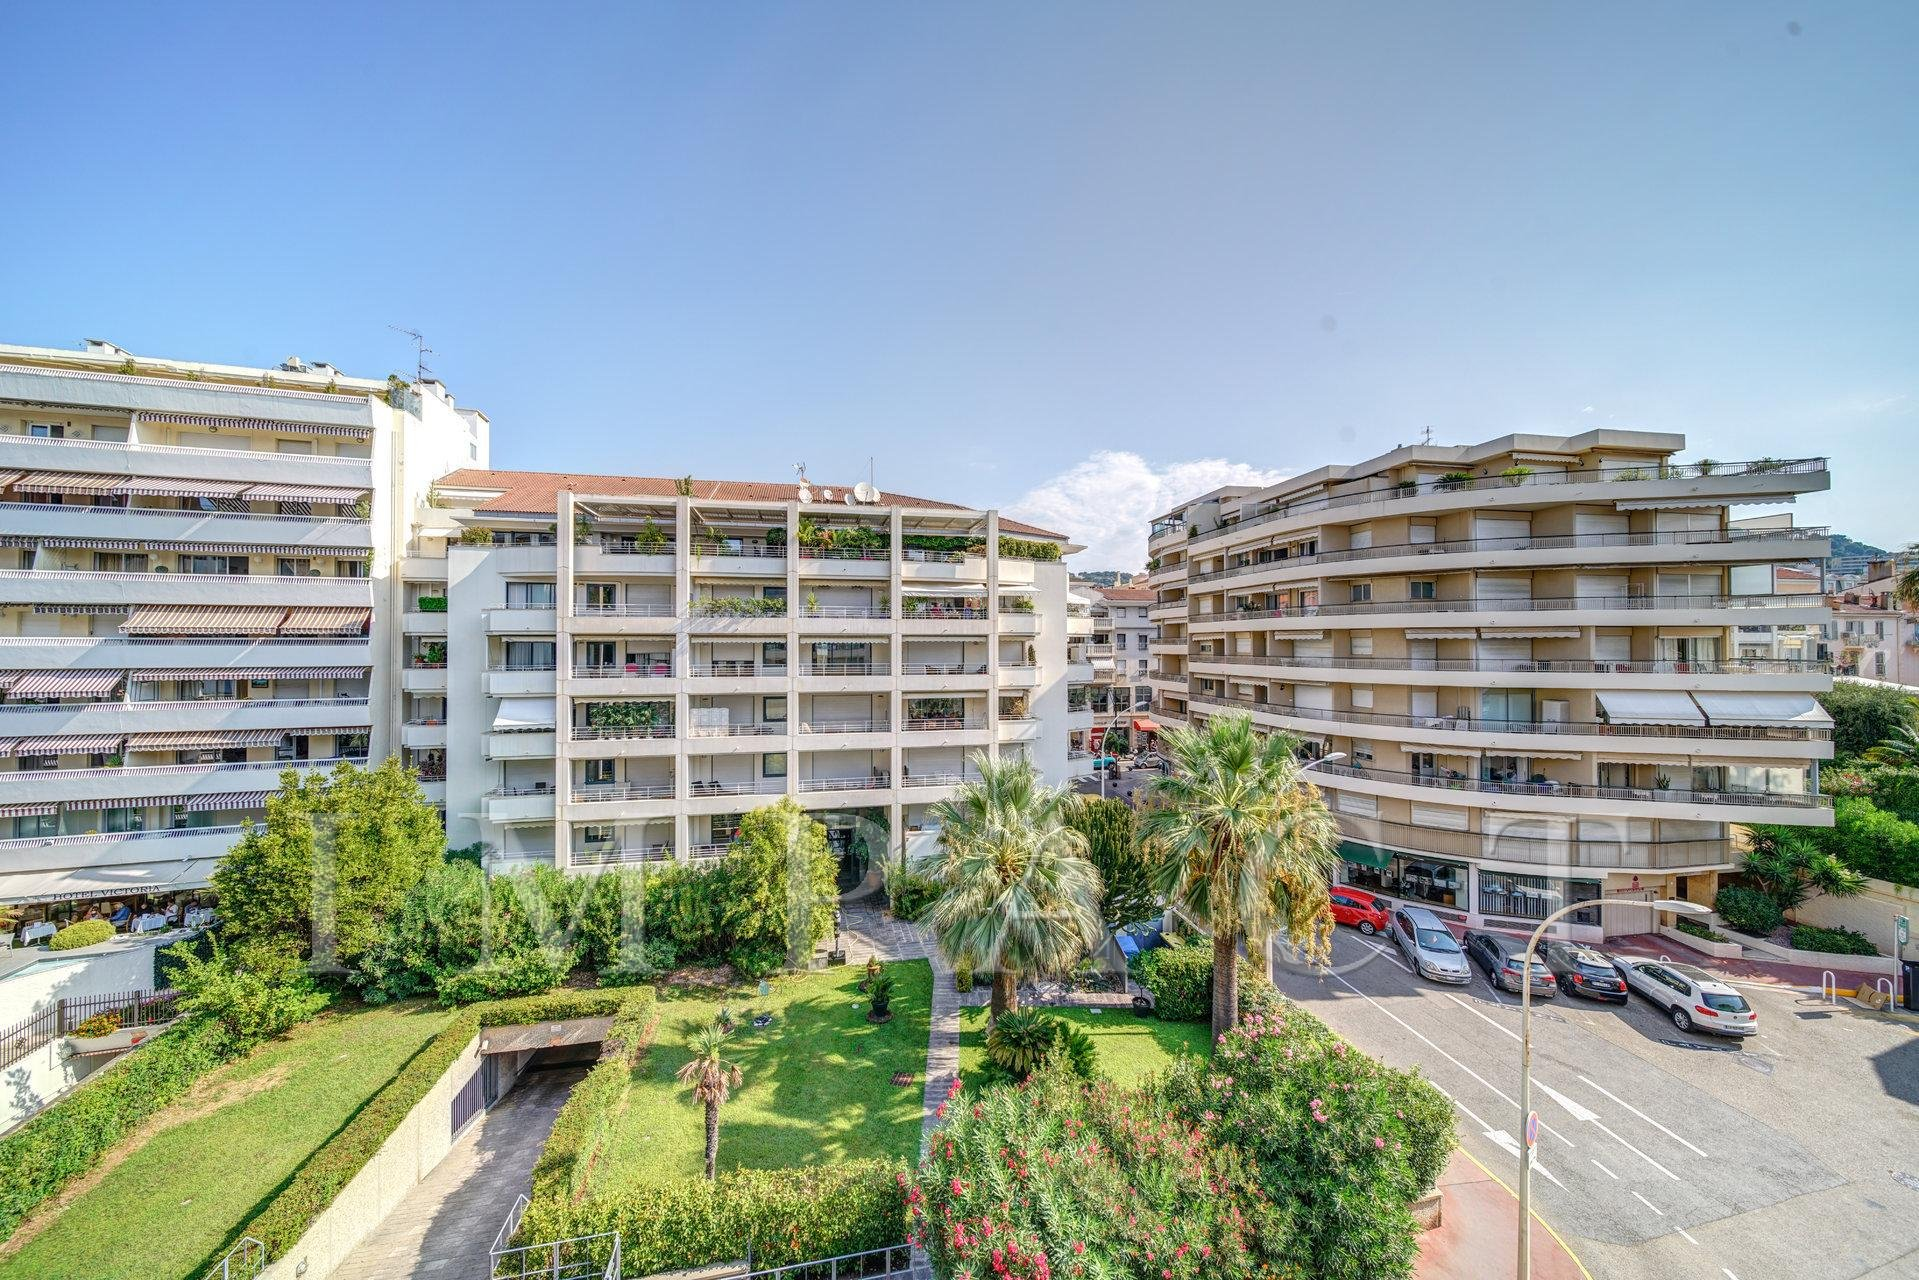 2-bedroom apartment for rent in the center of Cannes